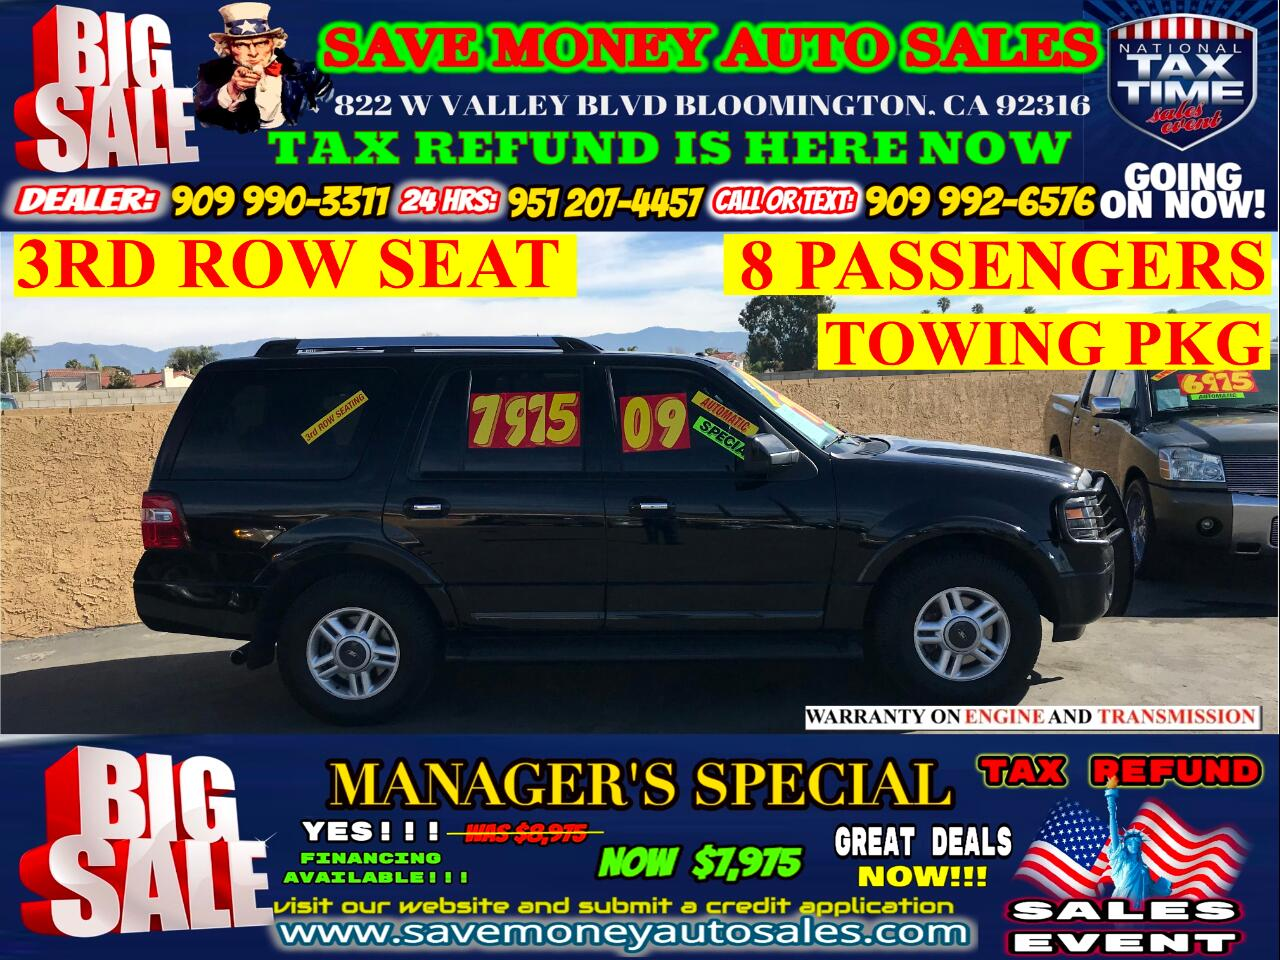 2009 Ford Expedition LIMITED EDITION>3RD ROW SEAT> TOWING PKG